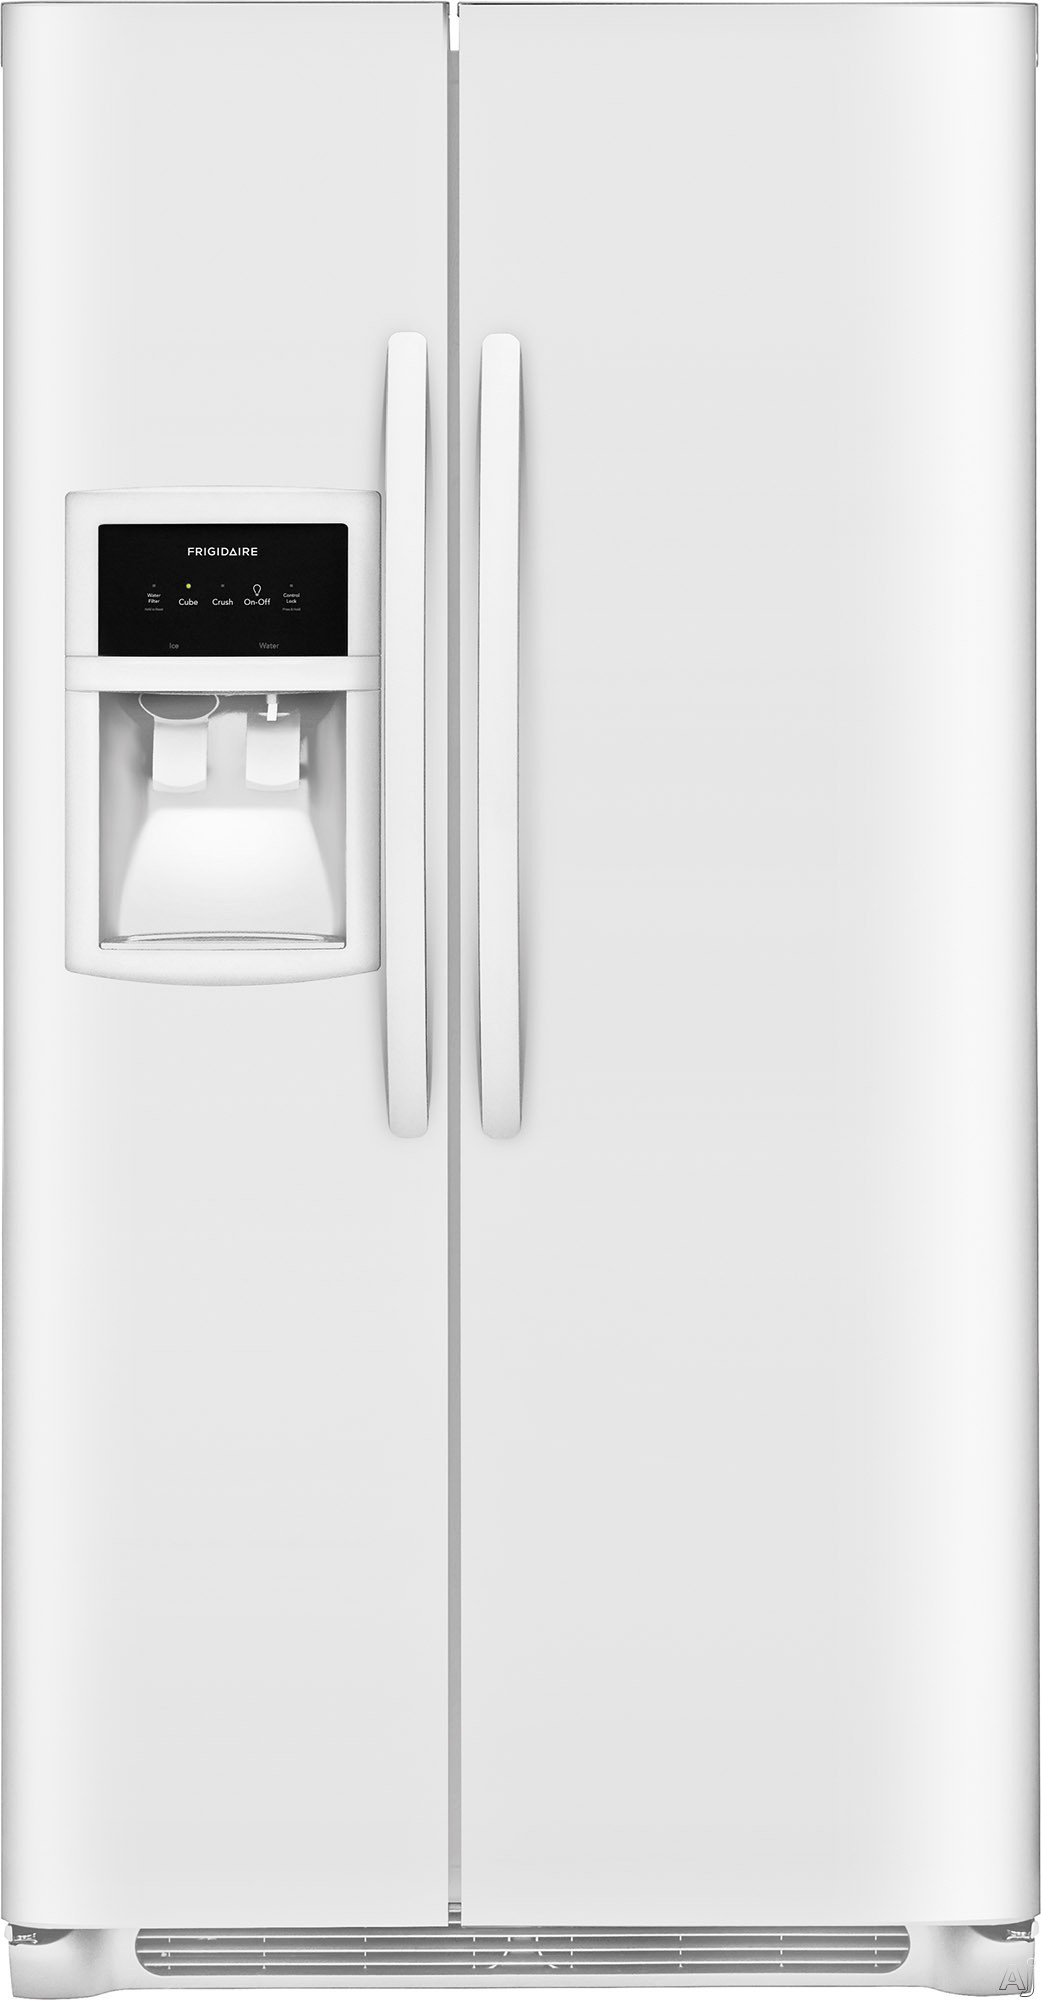 Images Frigidaire FFSS2625TP 36 Inch Side-by-Side Refrigerator with PureSource® Filtration, Ready-Select® Controls, Filter Alert, Control Lock, Store-More™ Shelves, Store-More™ Gallon Bins, Store-More™ Drawers, Adjustable Interior Storage, Deli Drawer an